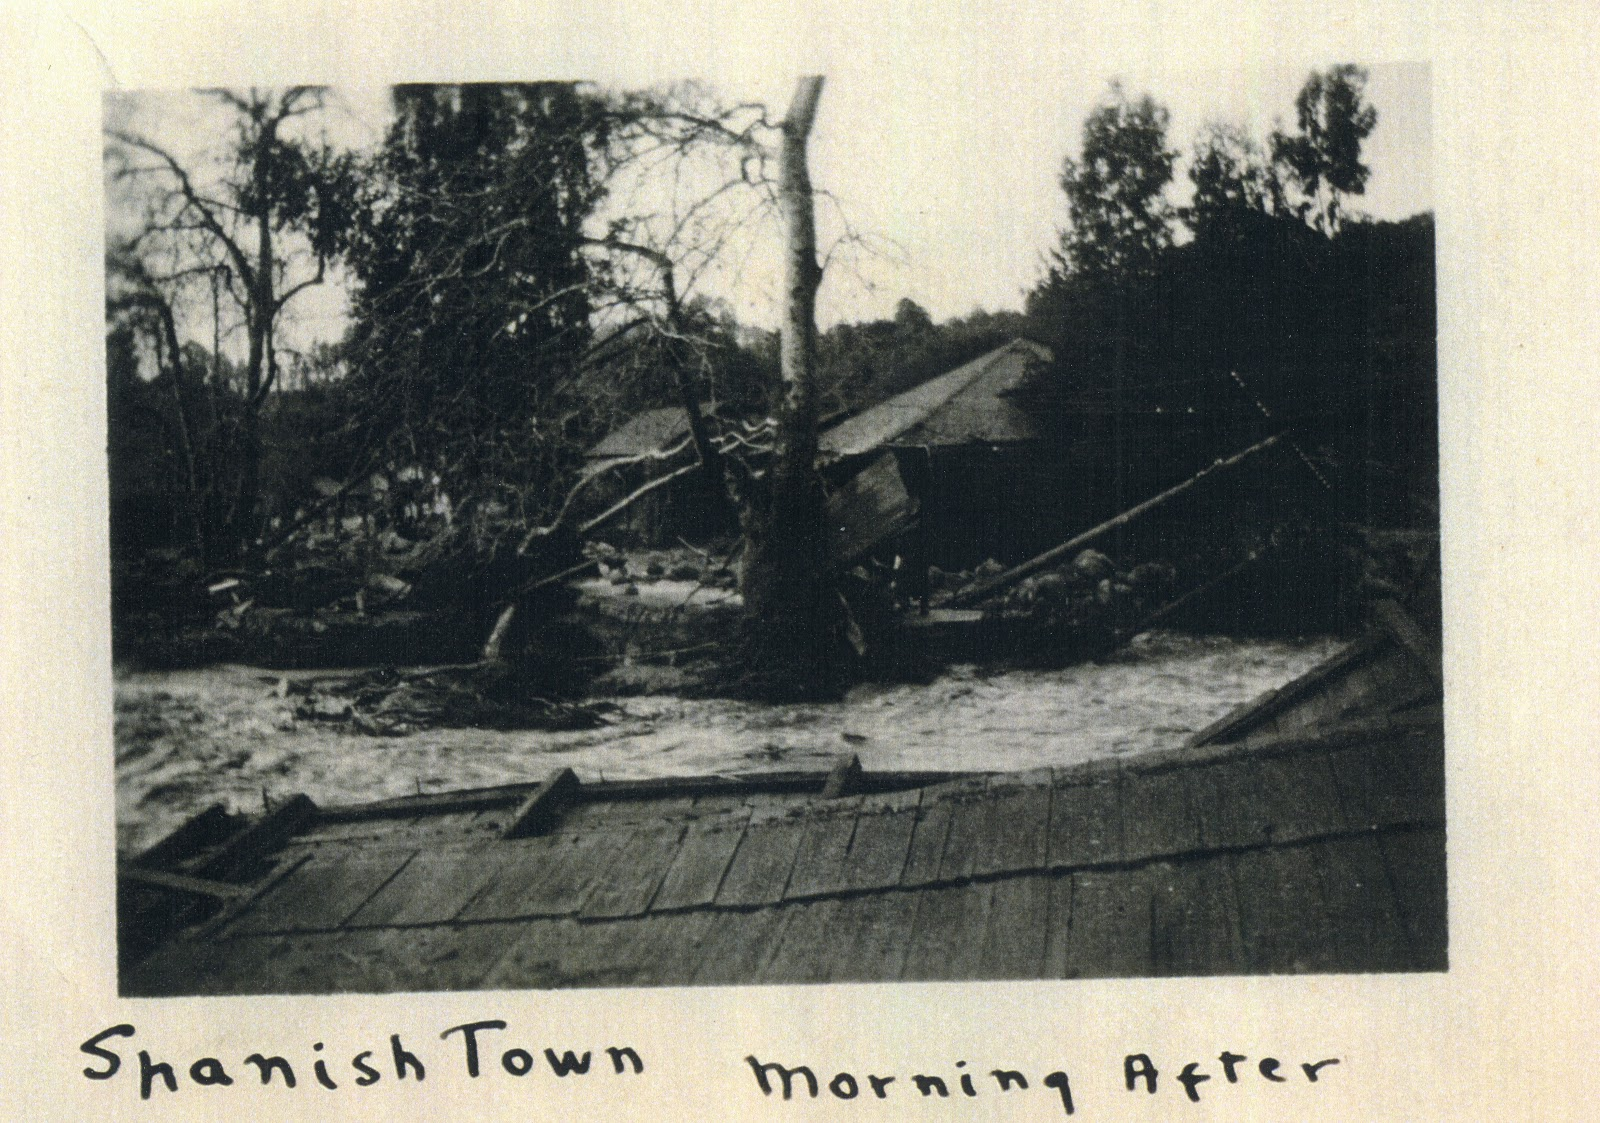 Old Spanish Town In Montecito, At East Valley Road And Montecito Creek, 1914.